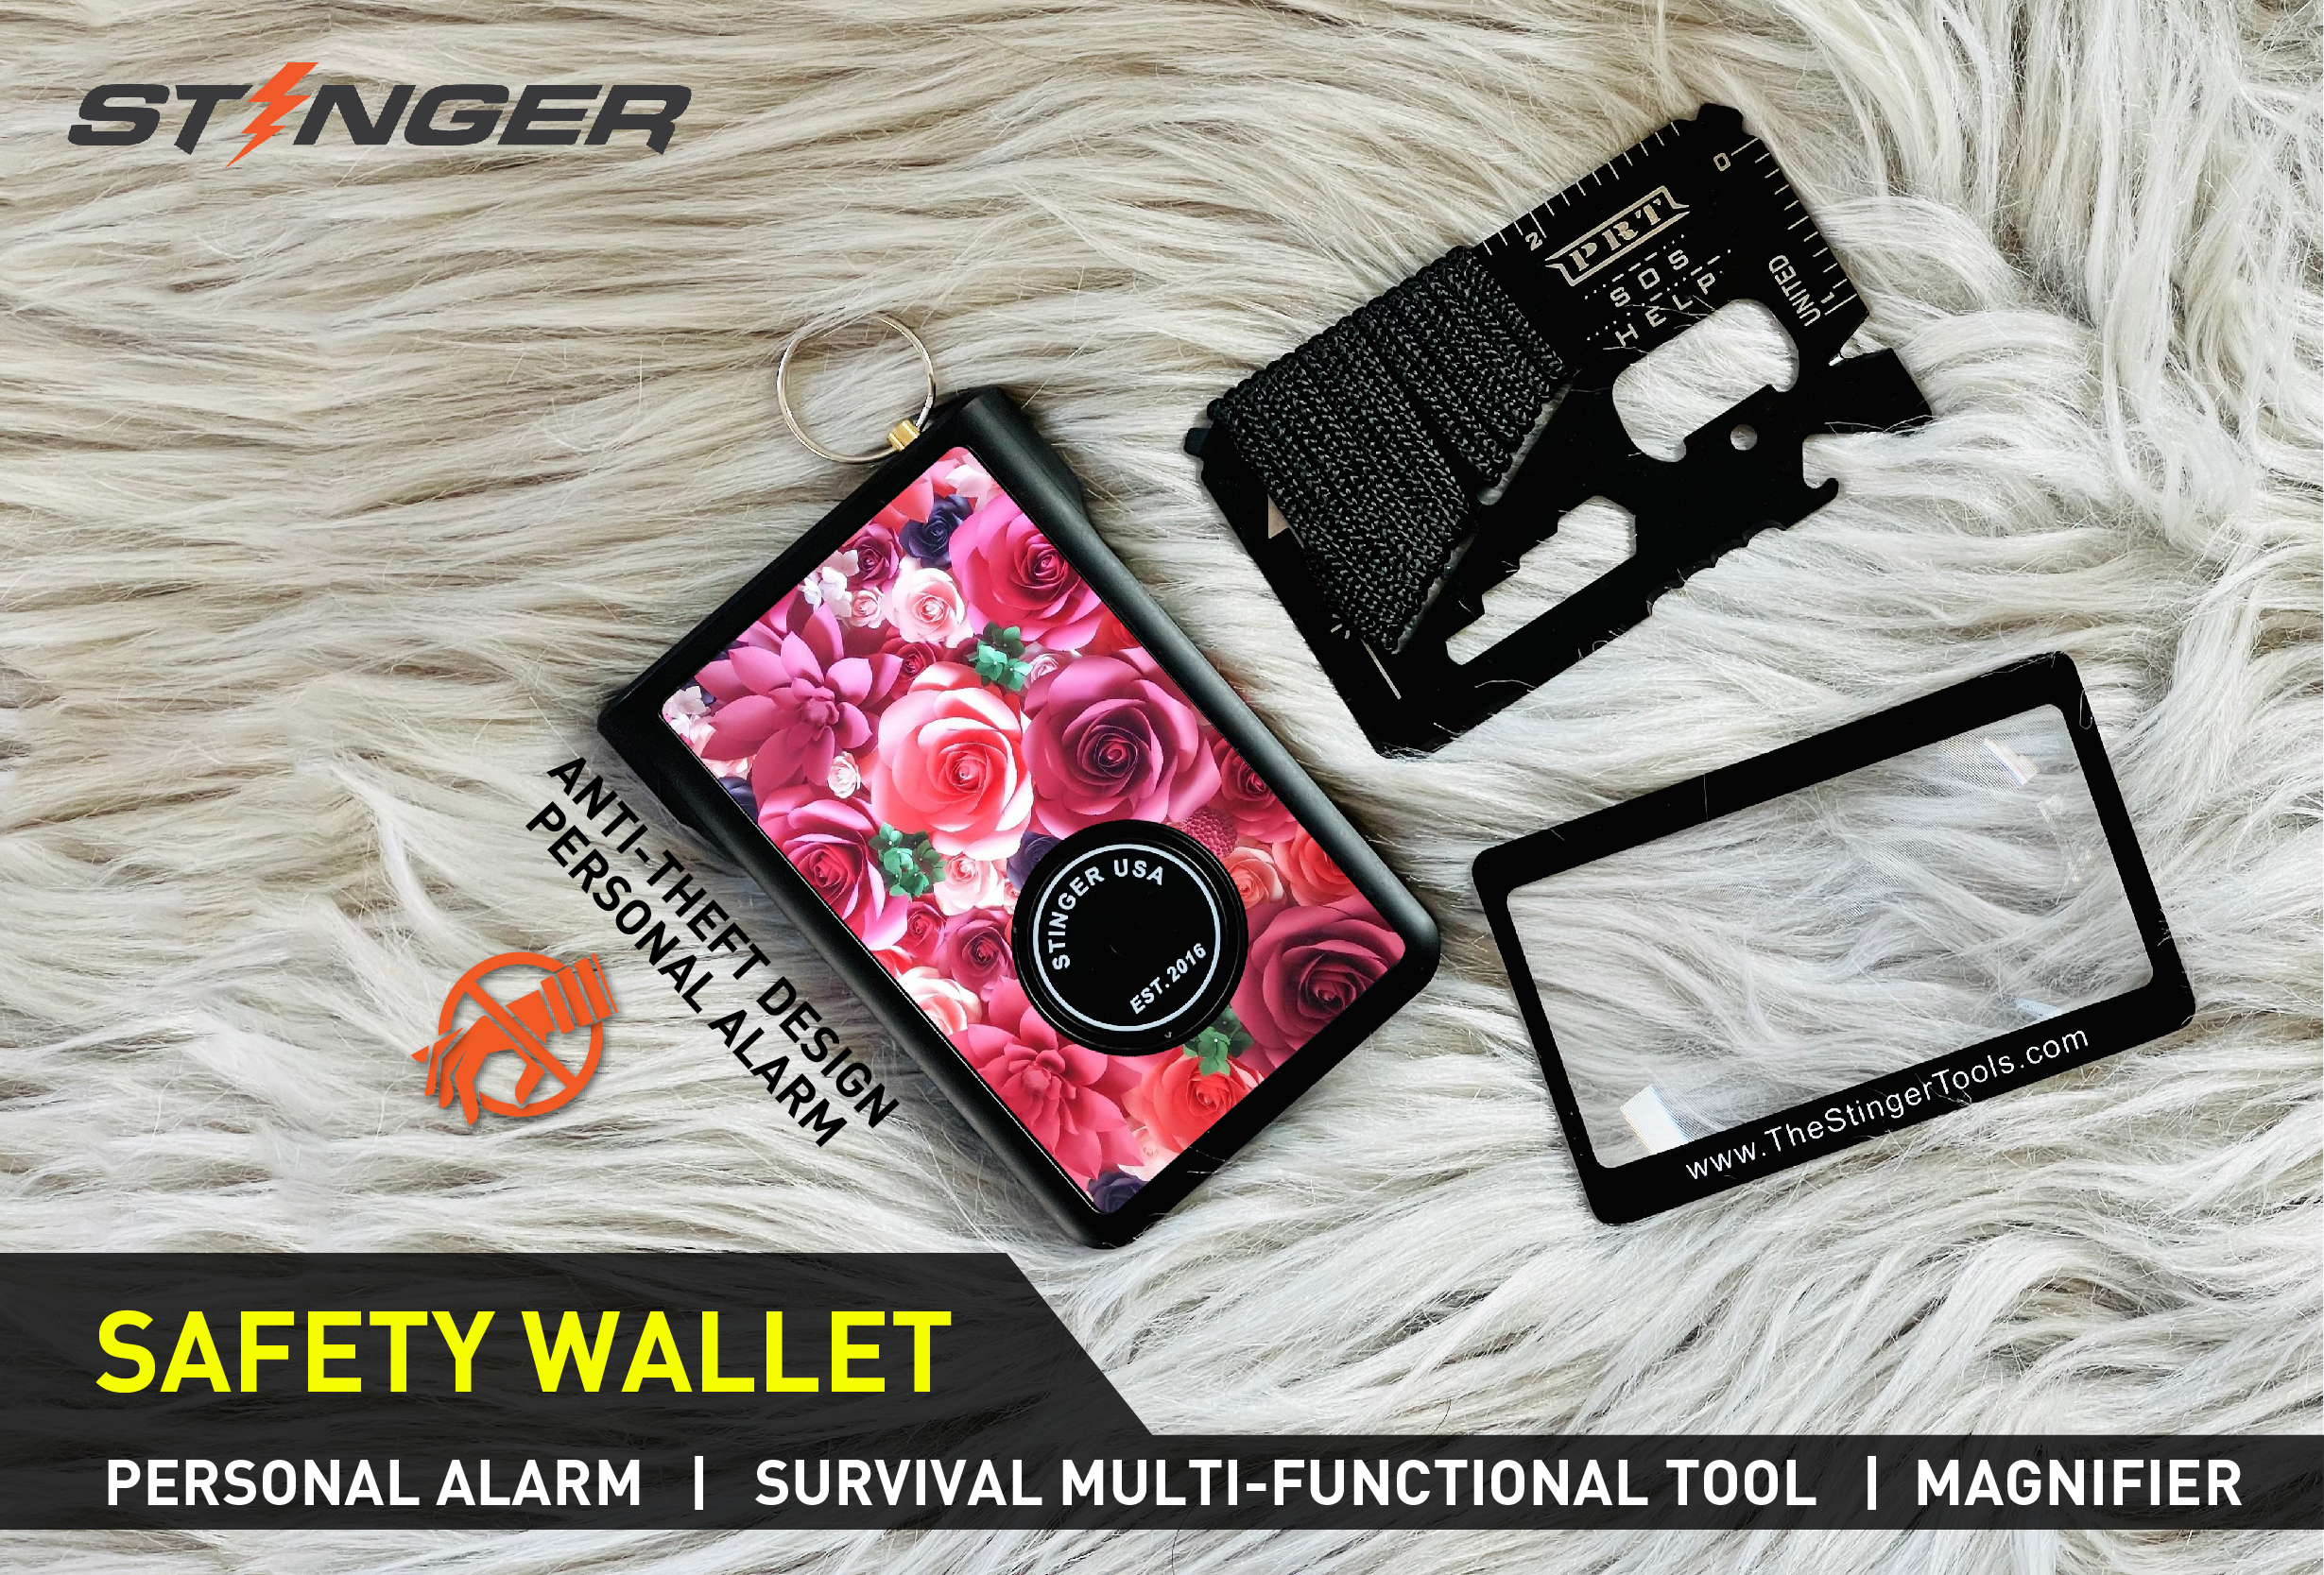 Stinger Safety Polymer Wallet with Personal Alarm Emergency Tool, Multi-functional Tool, and Magnifier, Original Design in USA